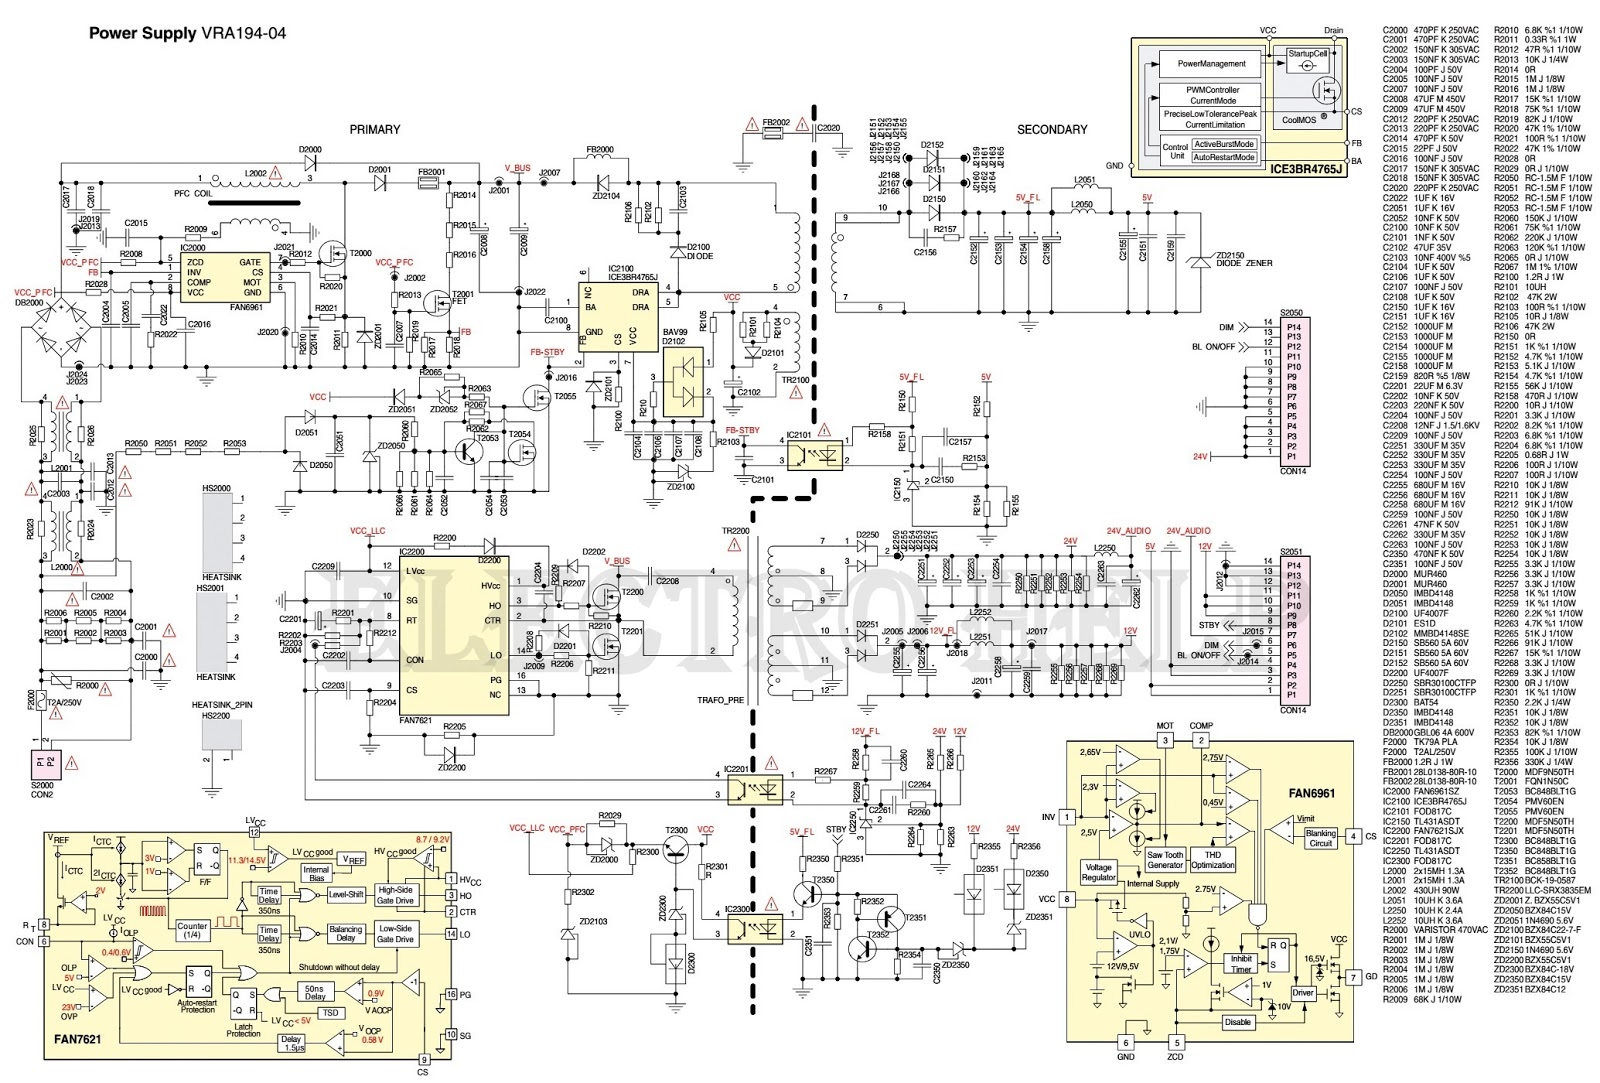 GRUNDIG LCD TV Power Supply VRA194-04 SMPS CIRCUIT DIAGRAM ...